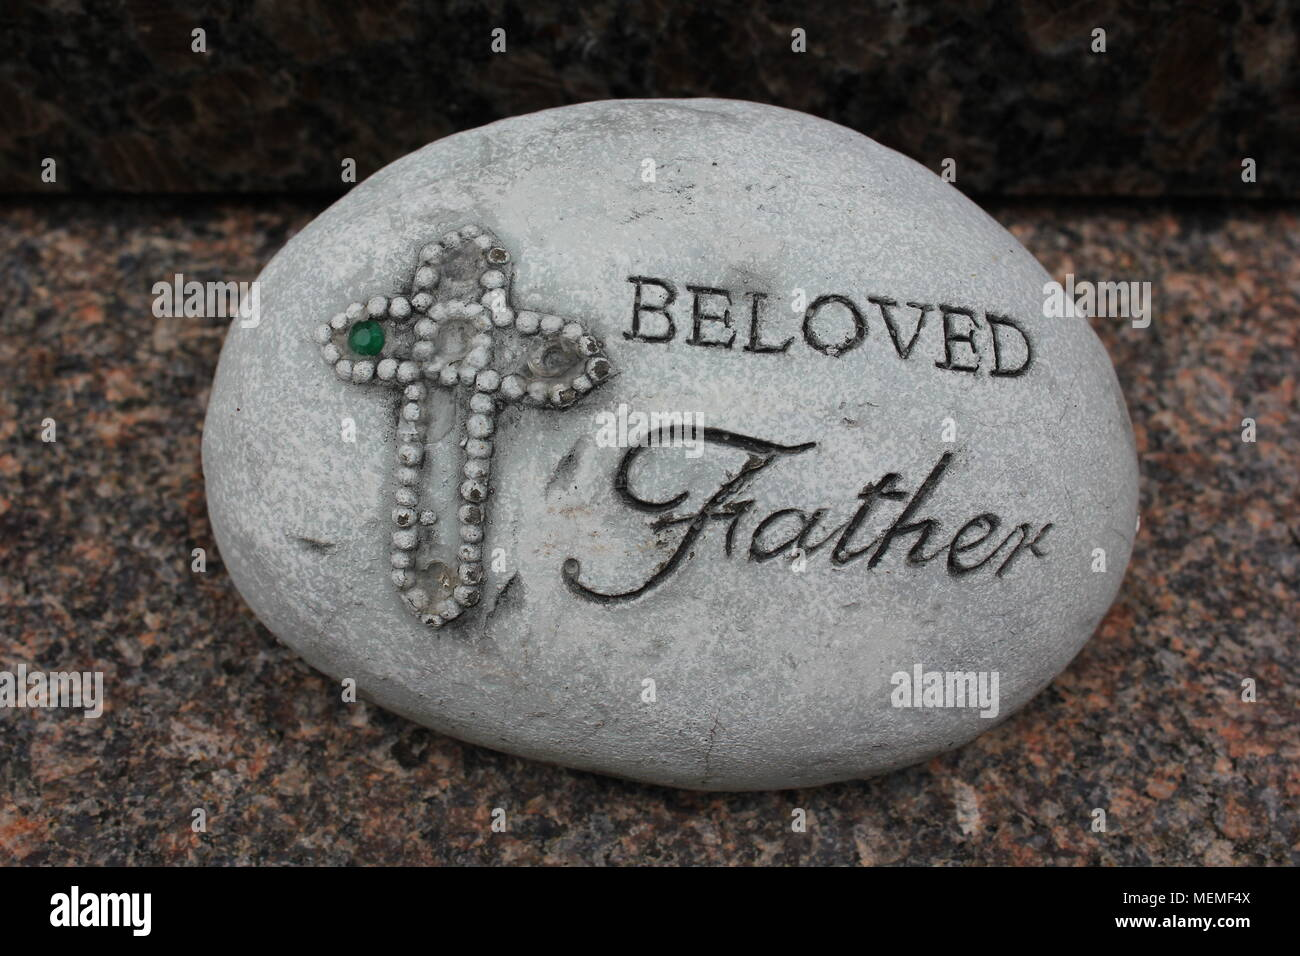 Memorial rock that states 'Beloved Father' next to a decorated cross. - Stock Image